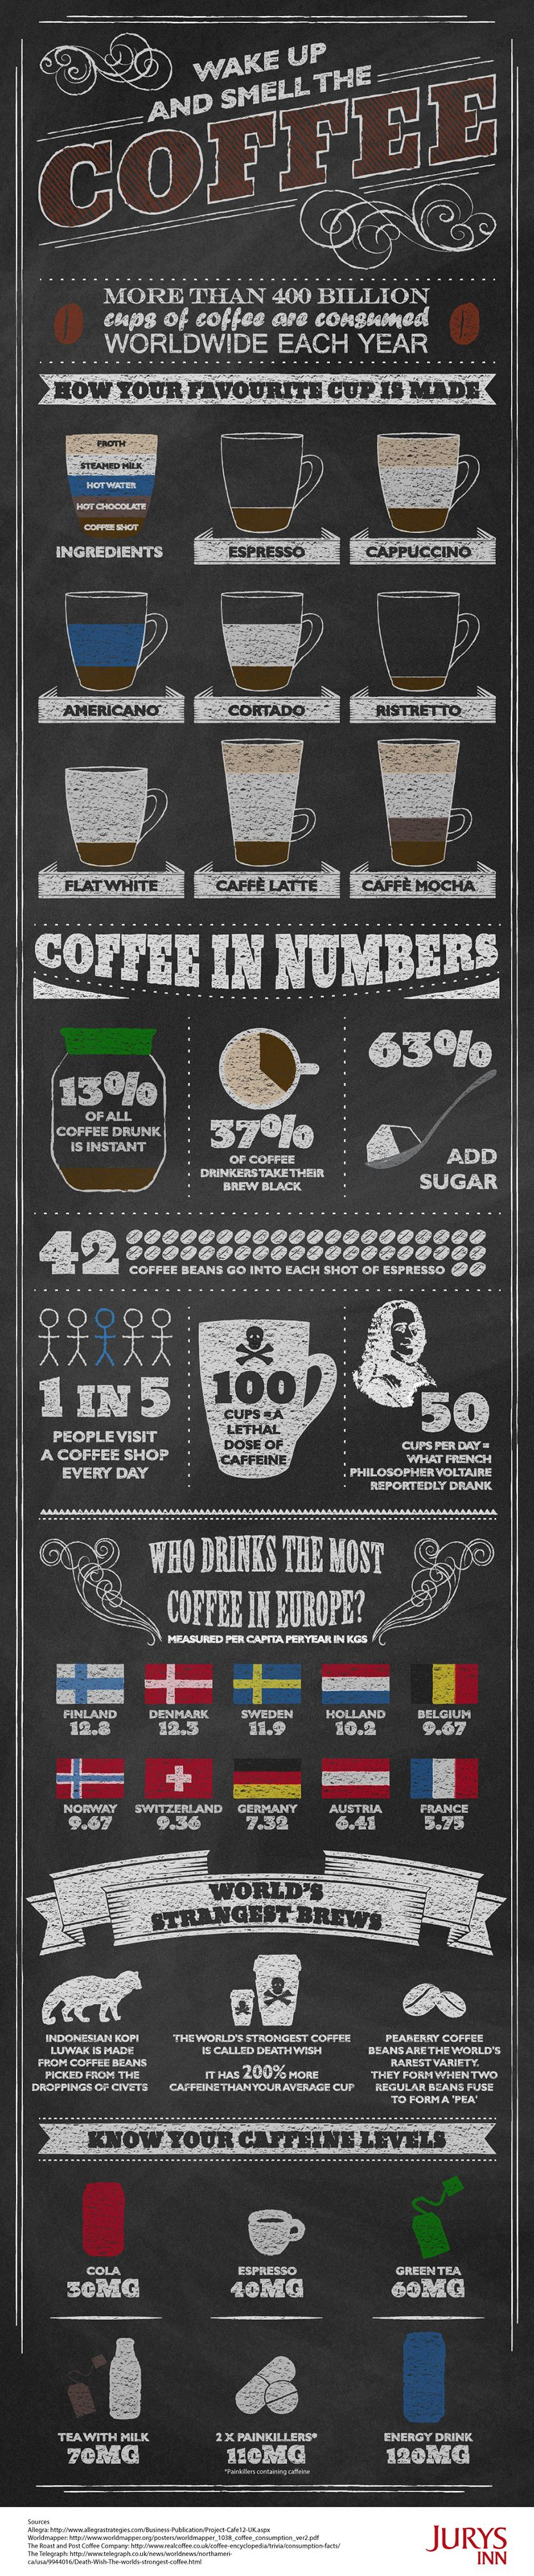 Infographic - Wake up and Smell the Coffee